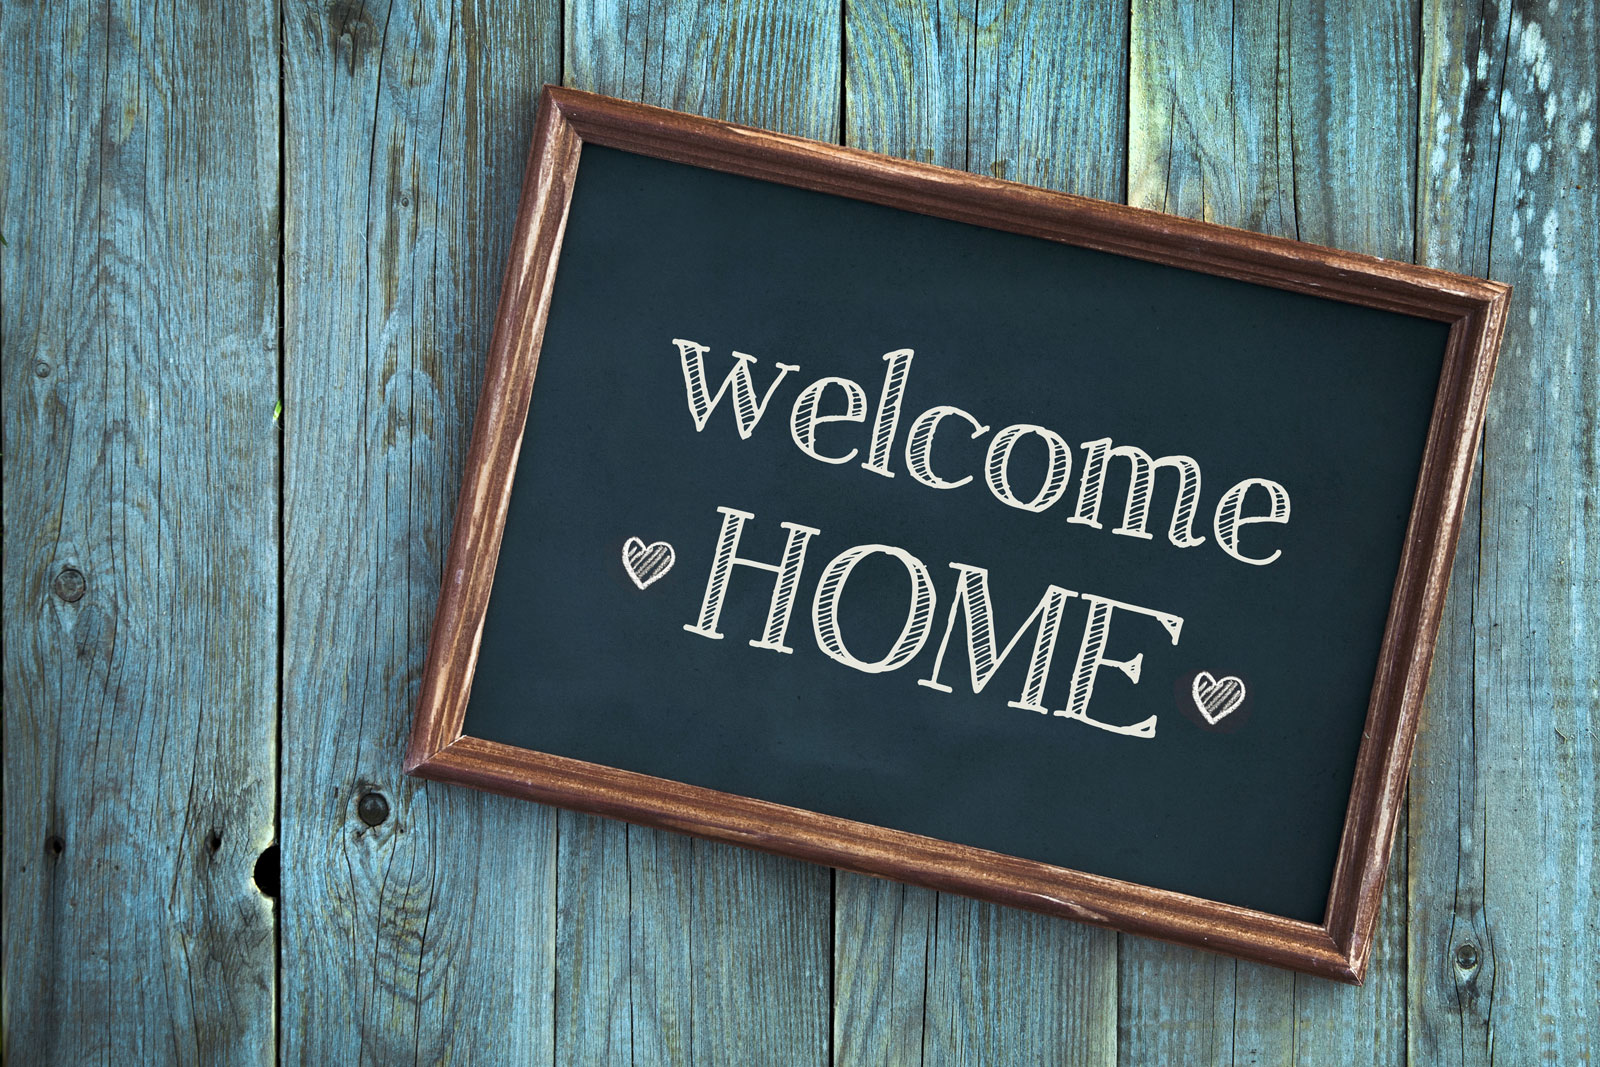 welcomehome Well Homes